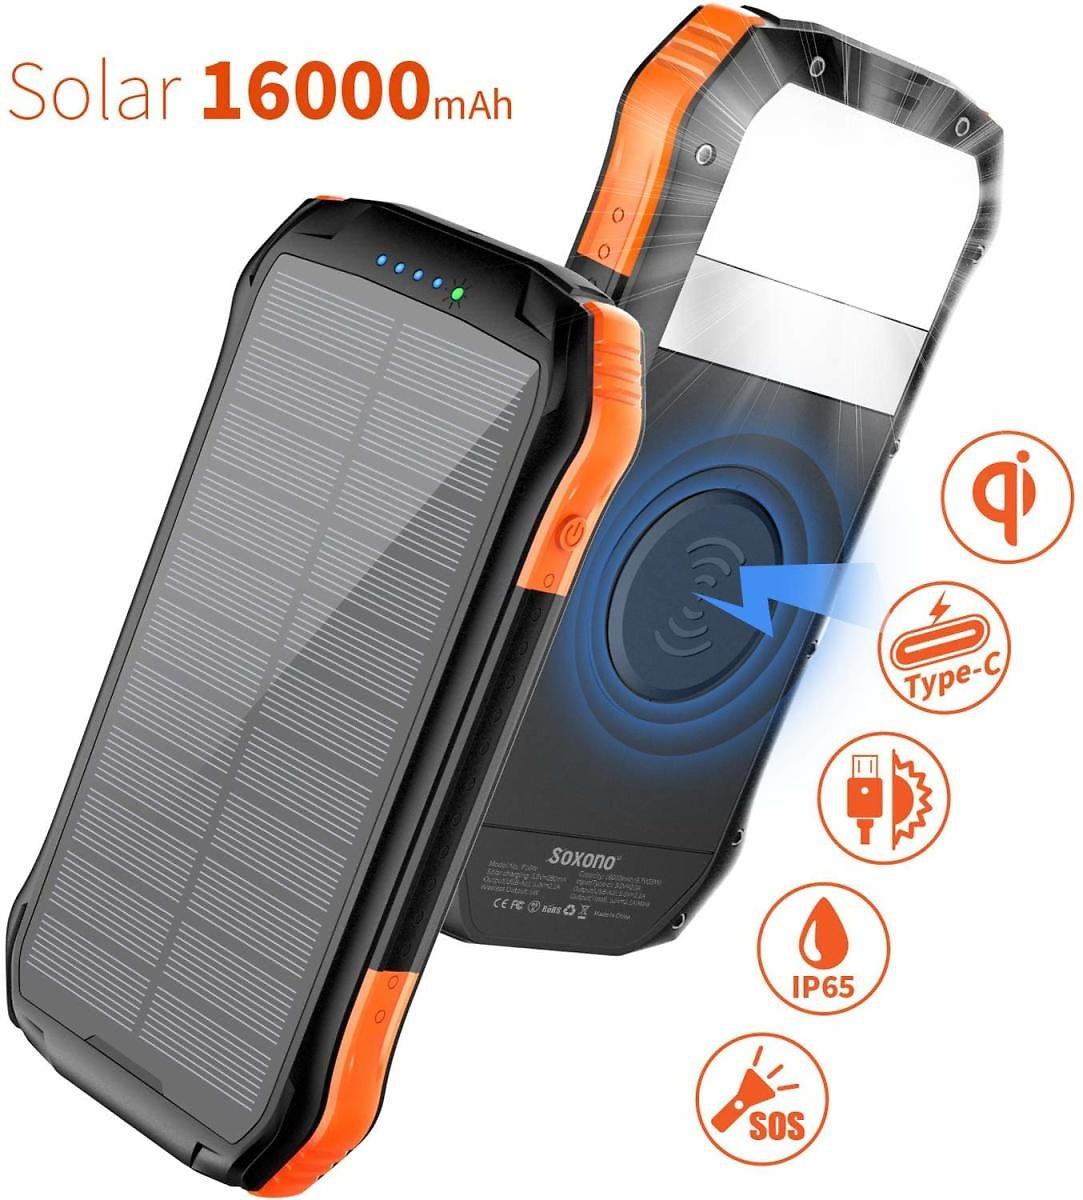 Solar Charger,Soxono 16000mAh Solar Power Bank with Qi Wireless Charger and 2-USB Port Ultra Portable Phone Charger Power Bank External Battery Pack with 15 LEDs Flashlight for IPhone,iPad,Samsung